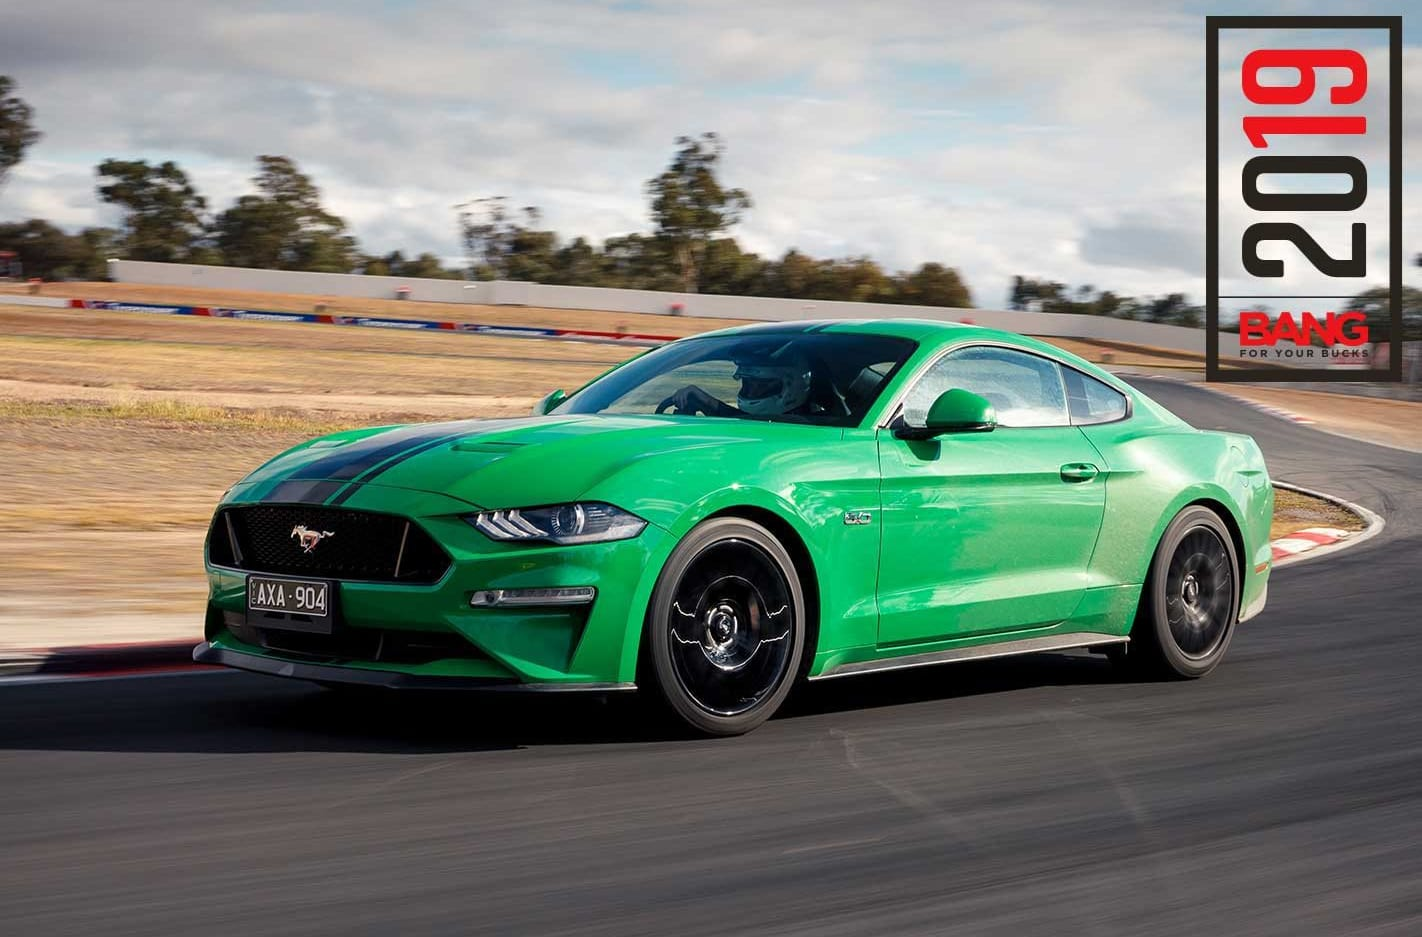 2019 Ford Mustang GT track review